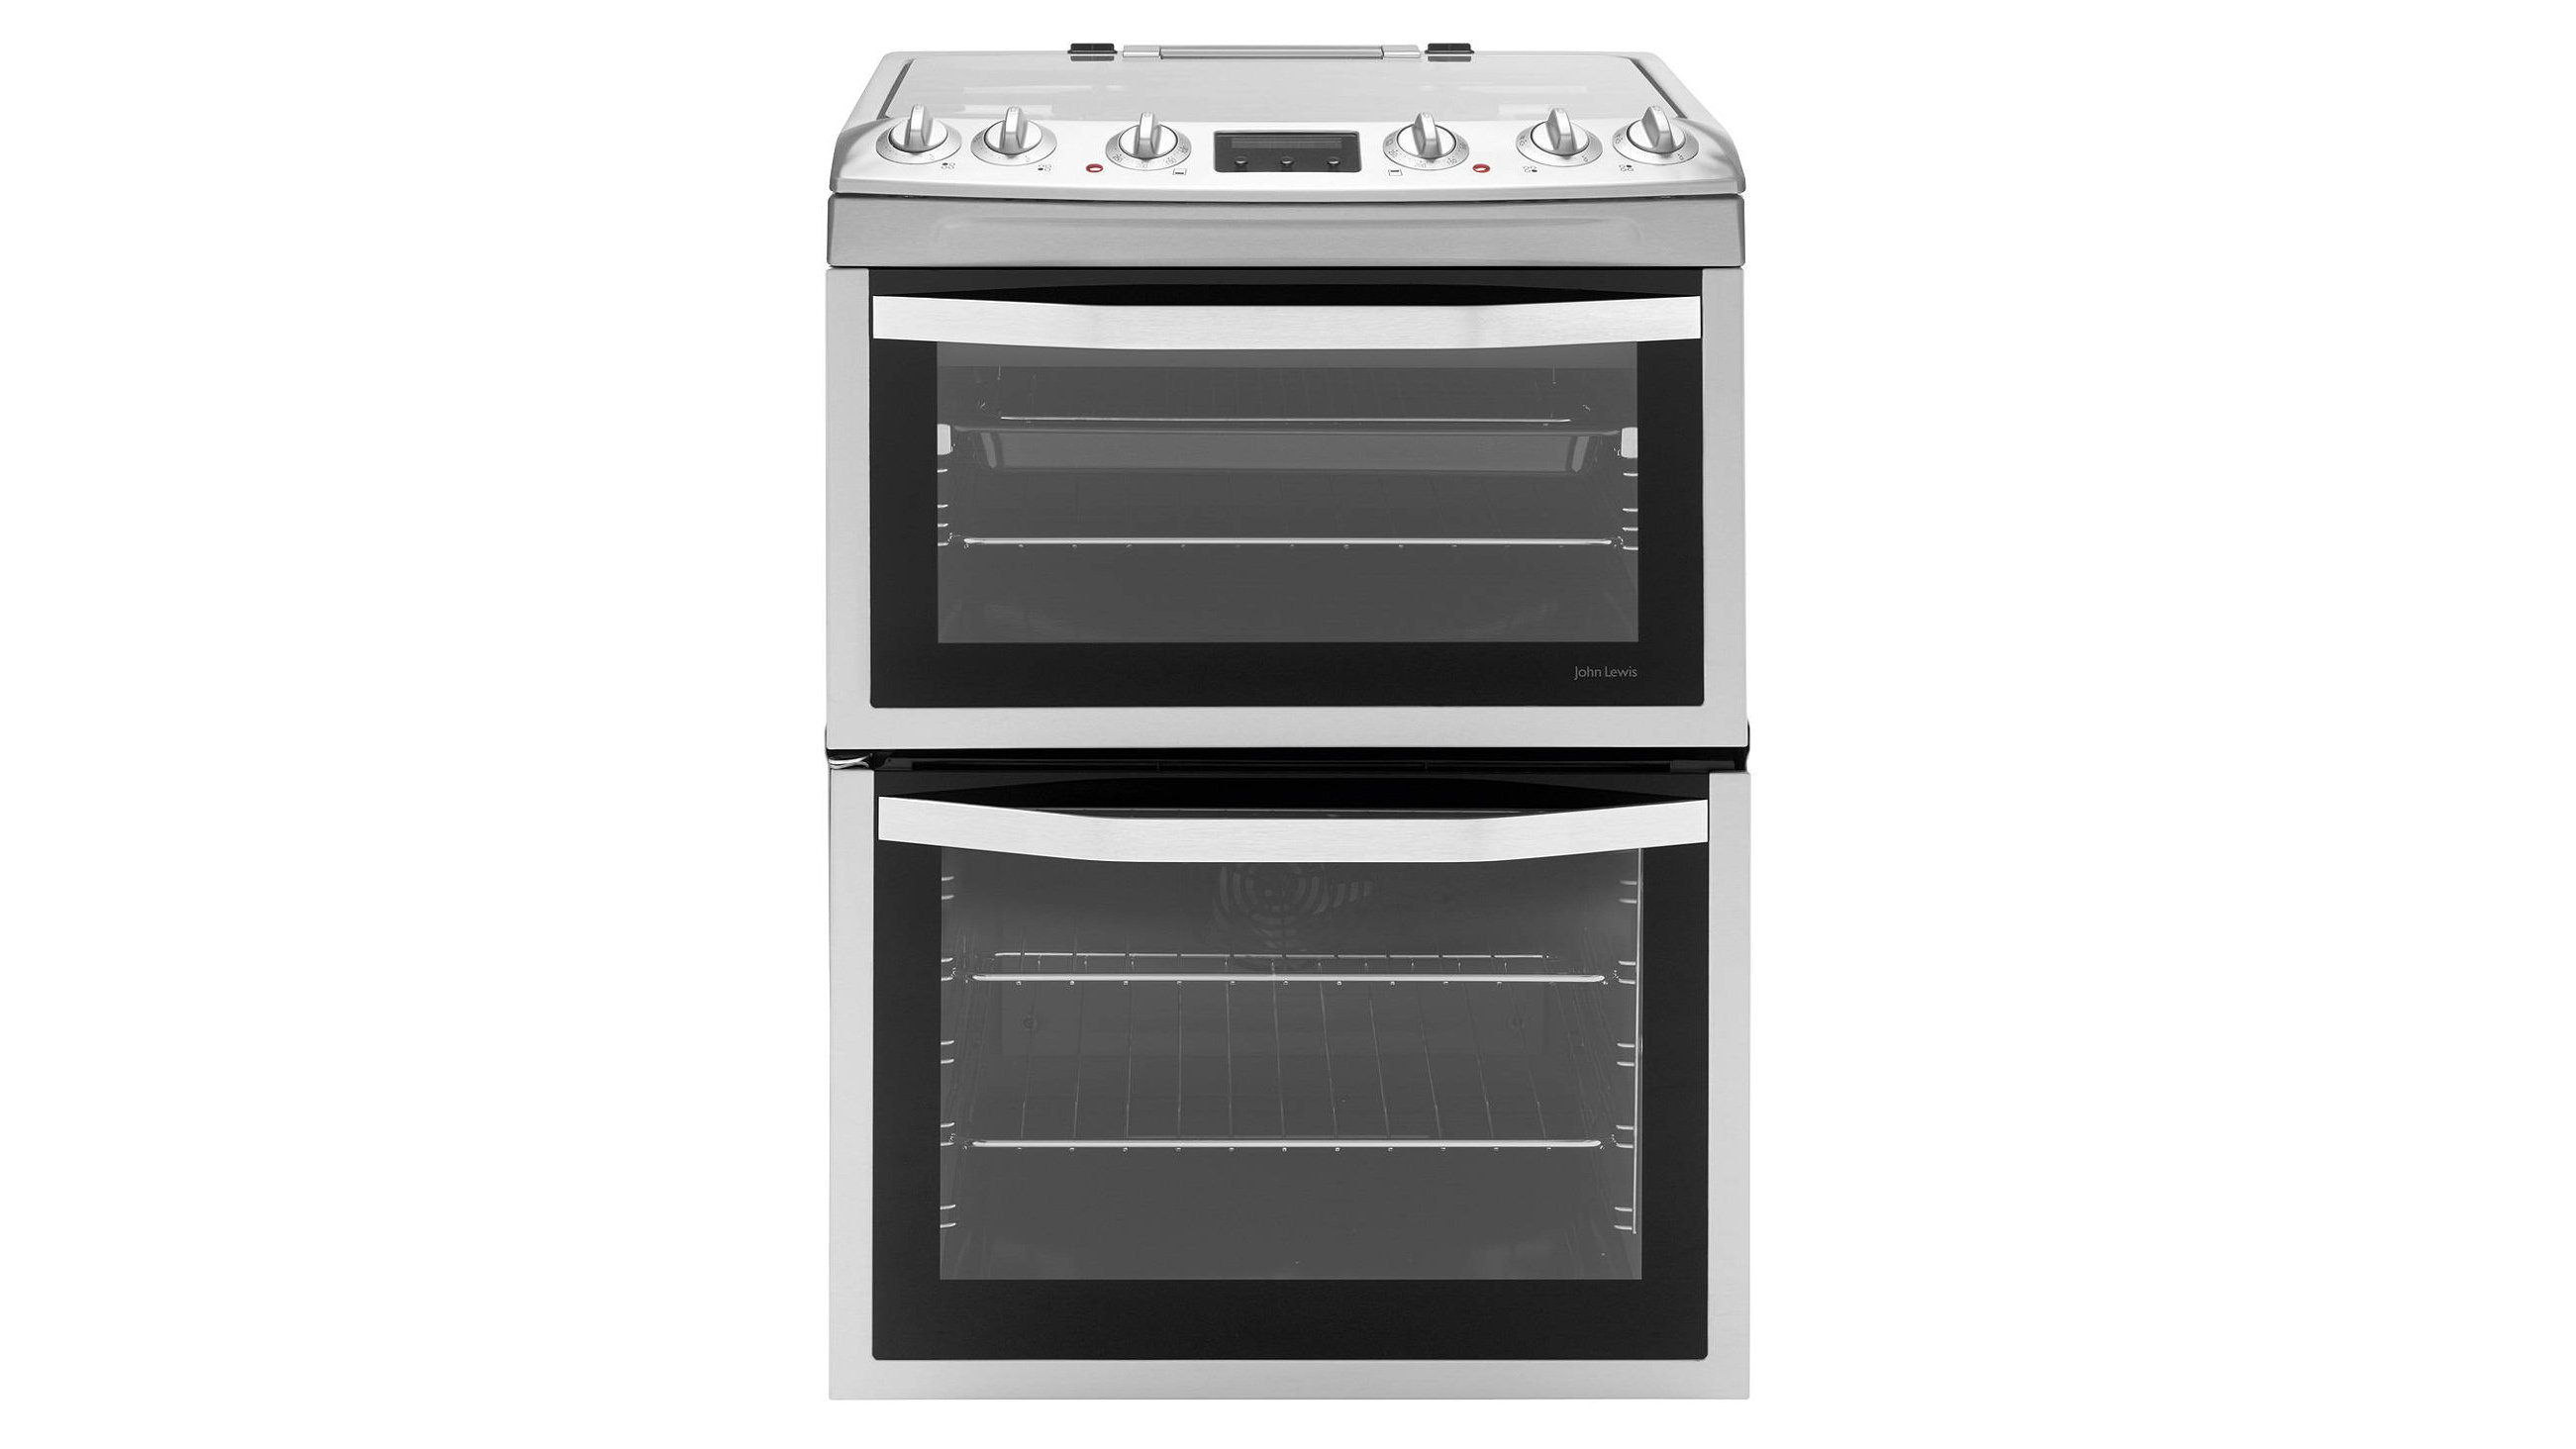 ee156f2e4e7 This highly-praised John Lewis-branded 60cm dual-fuel cooker (electric oven